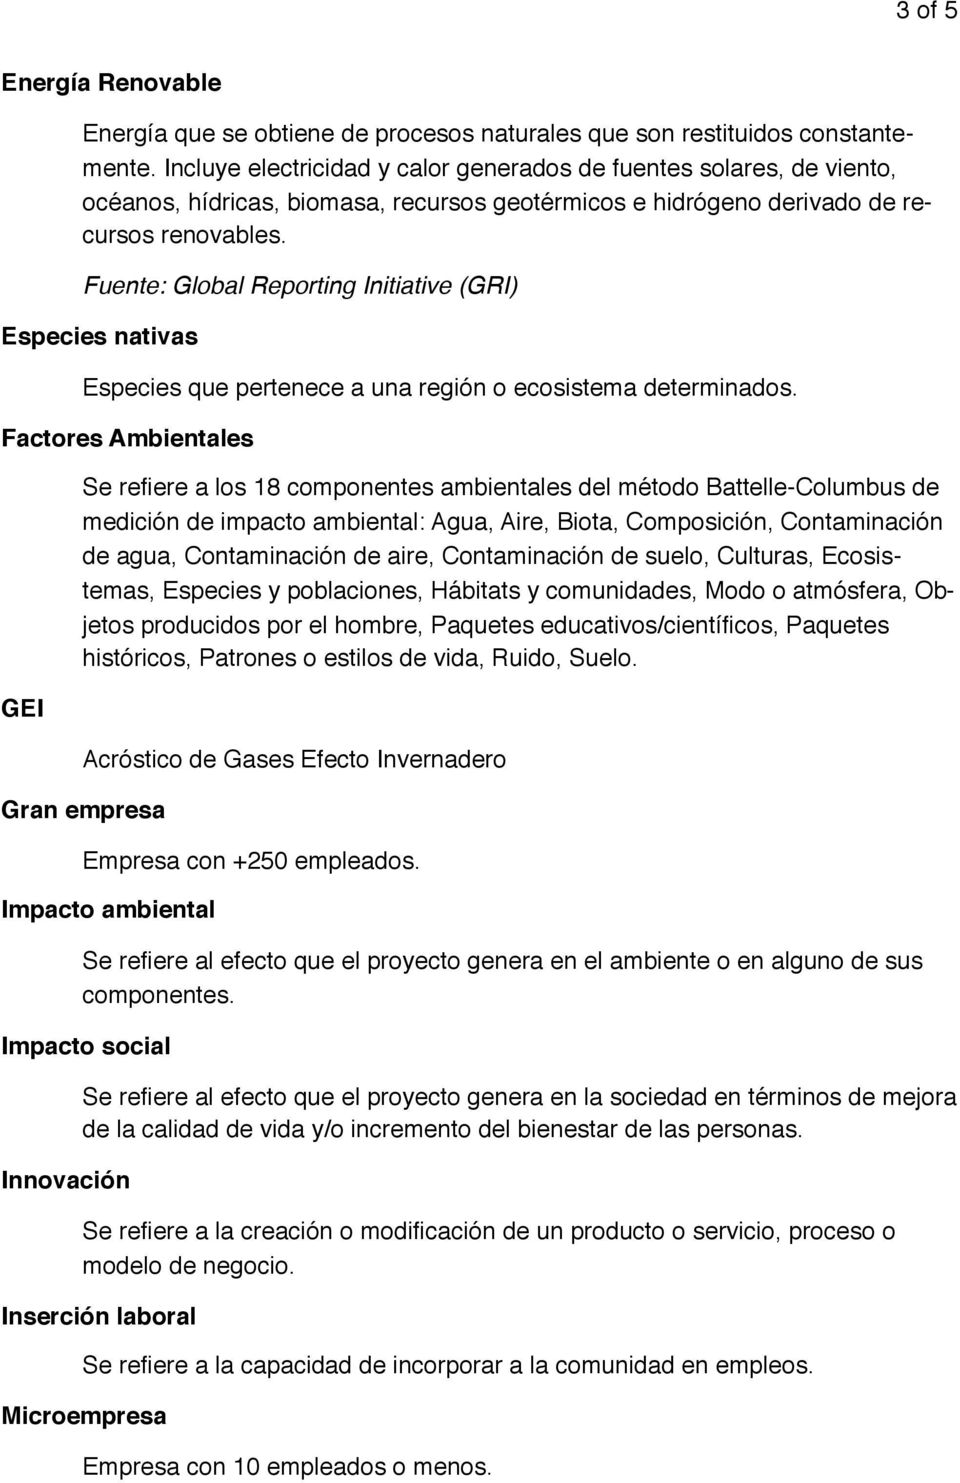 Fuente: Global Reporting Initiative (GRI) Especies nativas Especies que pertenece a una región o ecosistema determinados.